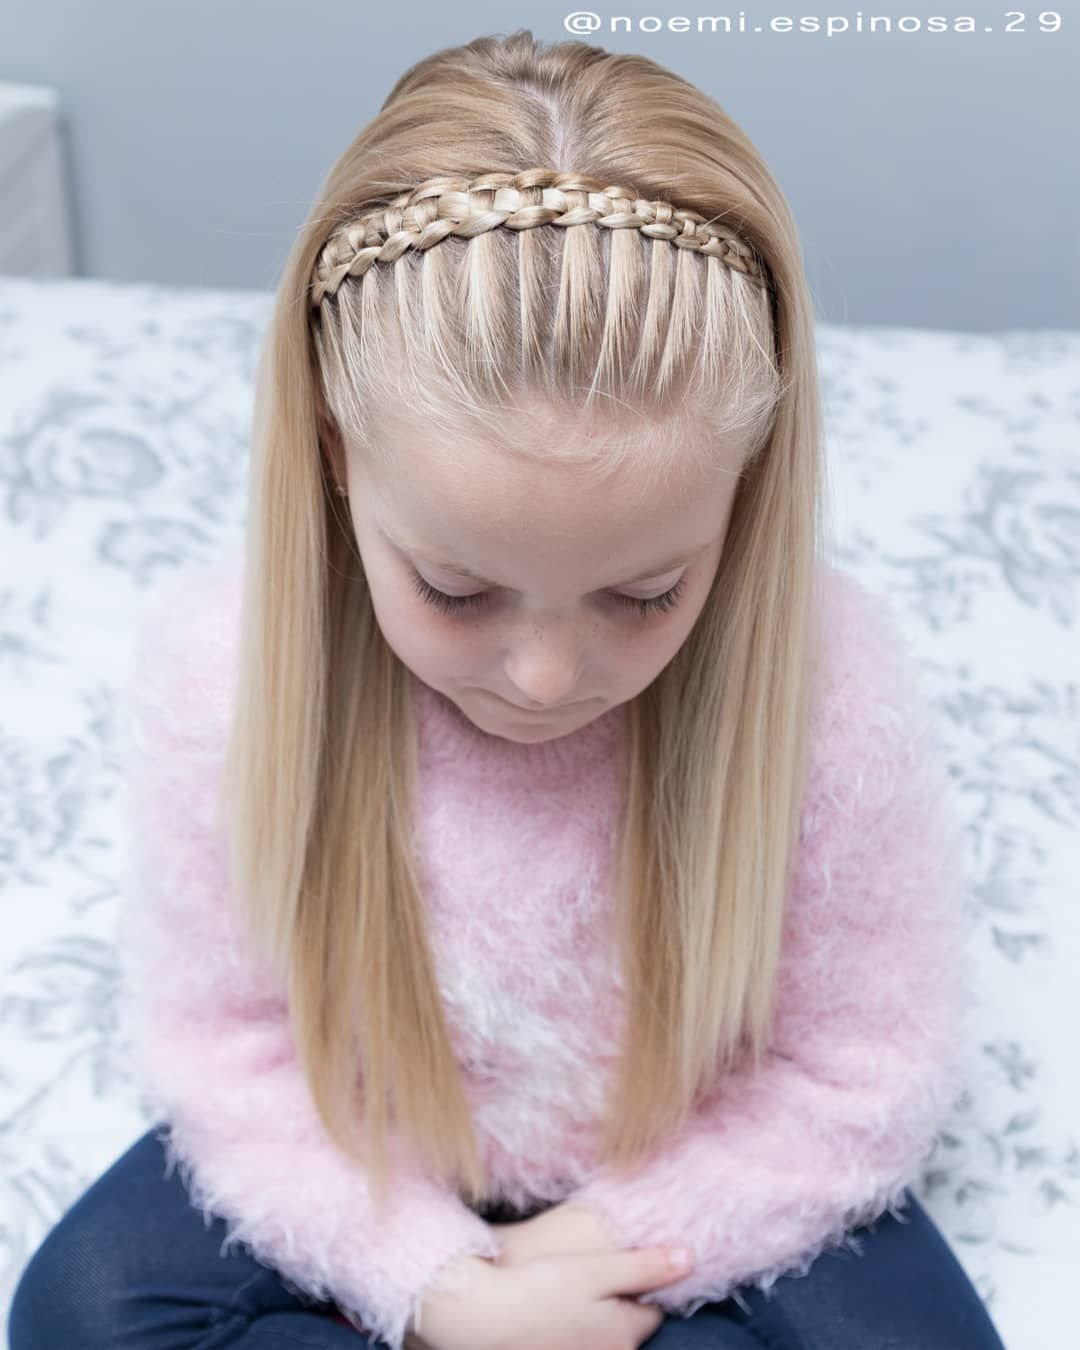 🎀Easy Hairstyles4little Girls🎀 (Noemi.Espinosa.29) • Instagram Photos And Videos - Hair Beauty